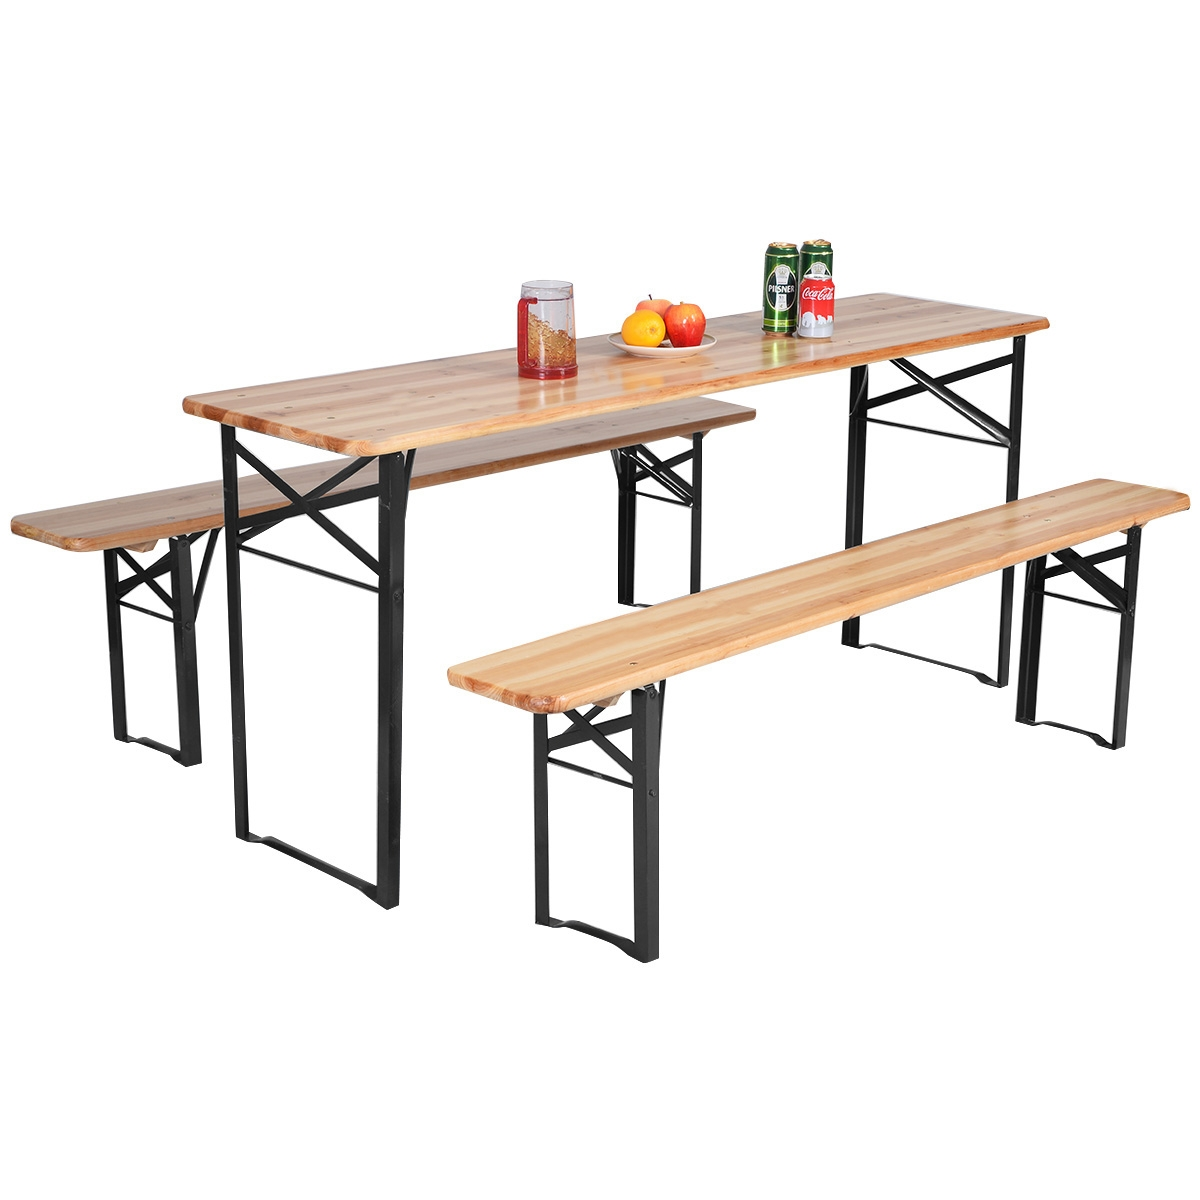 3 pcs Folding Wooden Picnic Table Bench Set